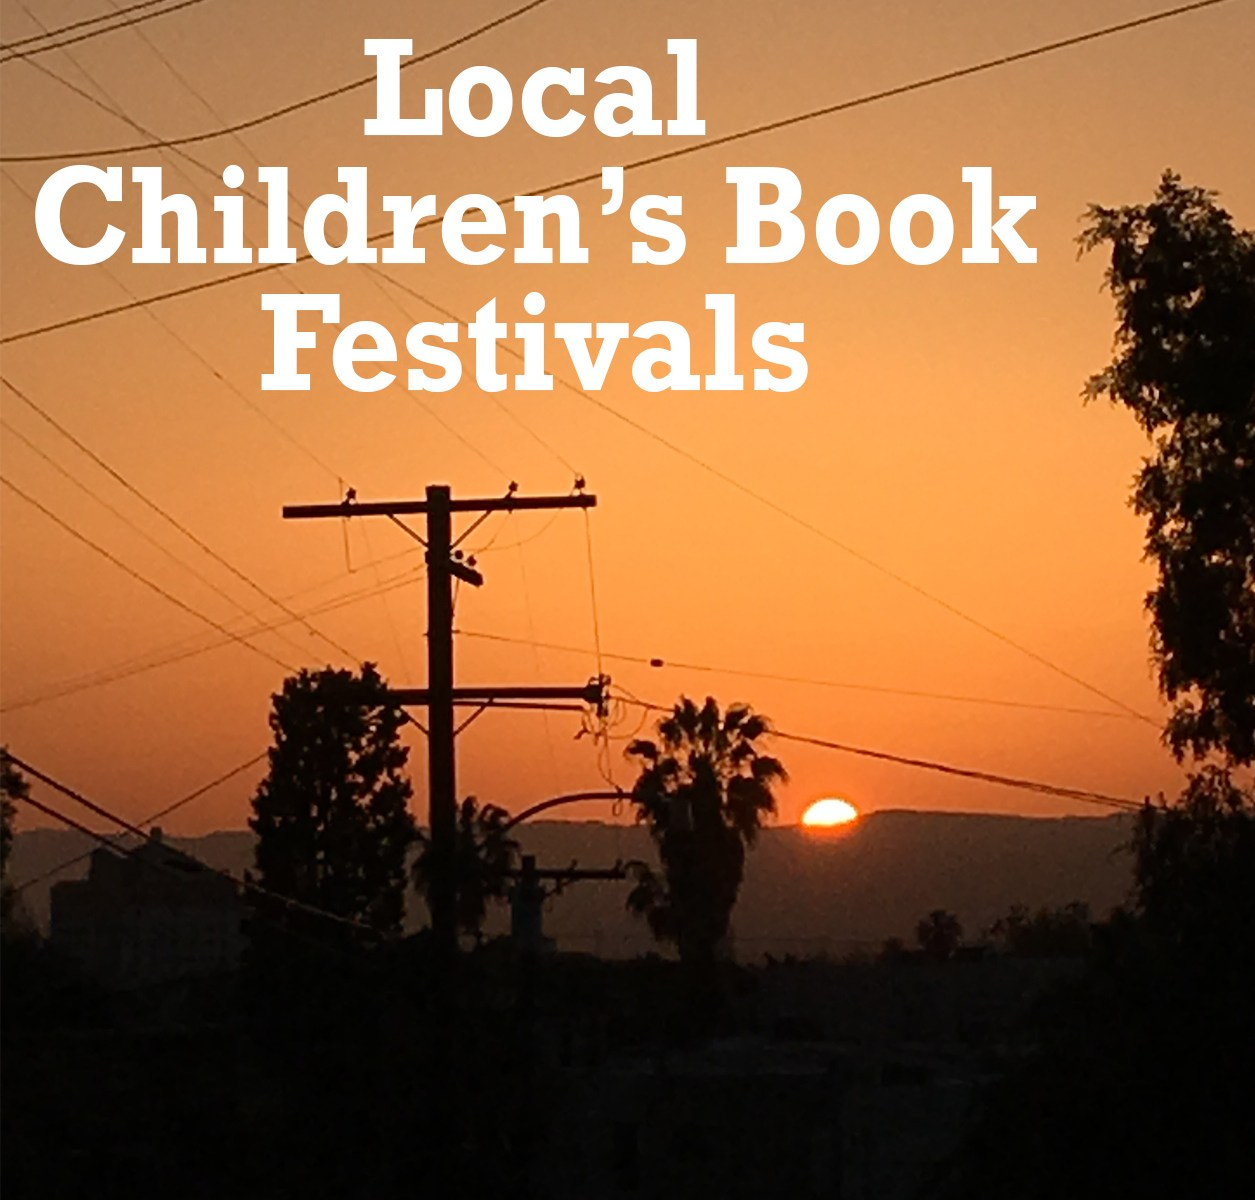 local children's book festivals